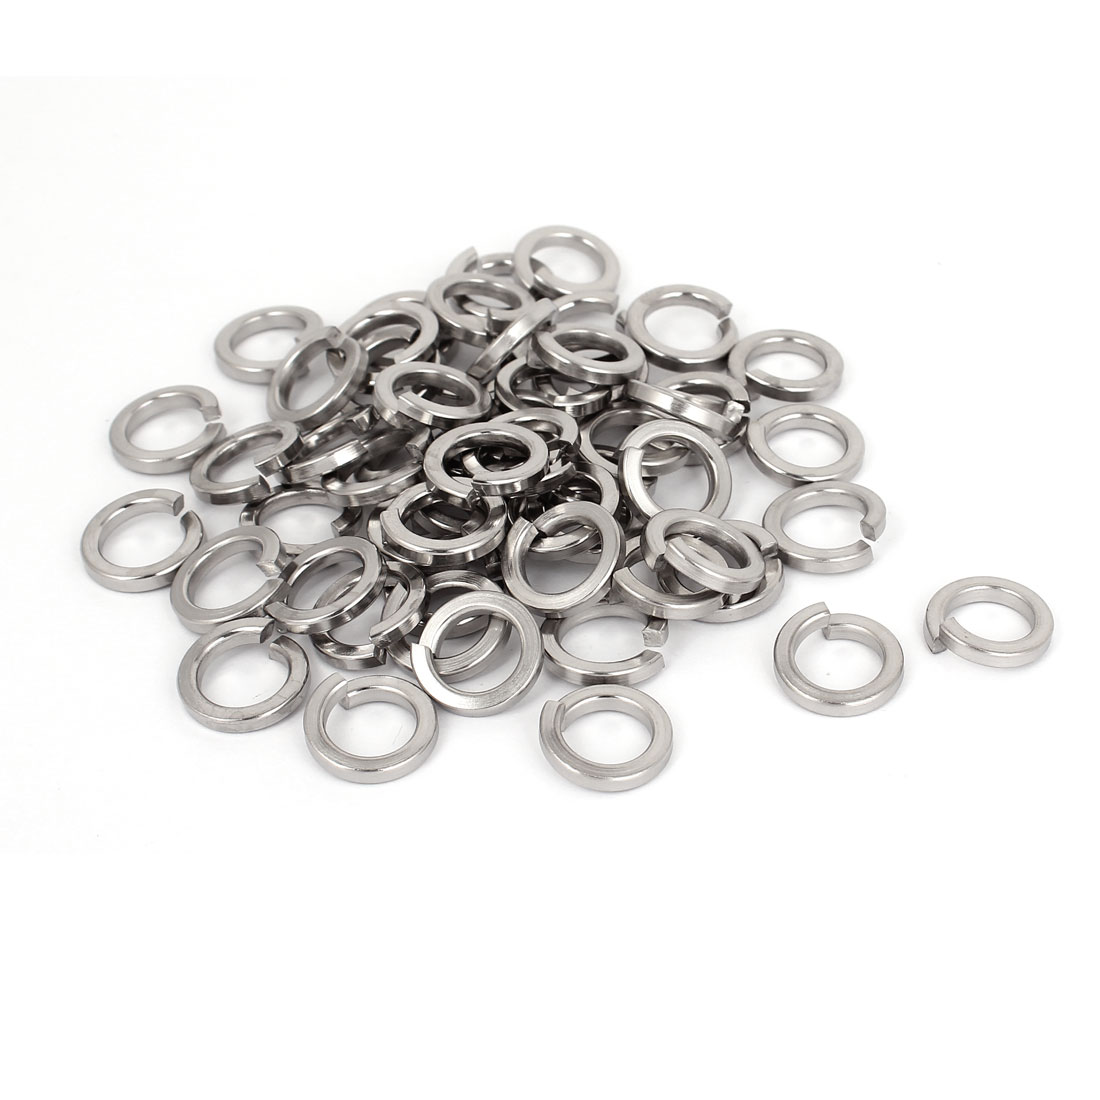 "100pcs 316 Stainless Steel Split Lock Spring Washers 3/8"" Screw Spacer Pad"